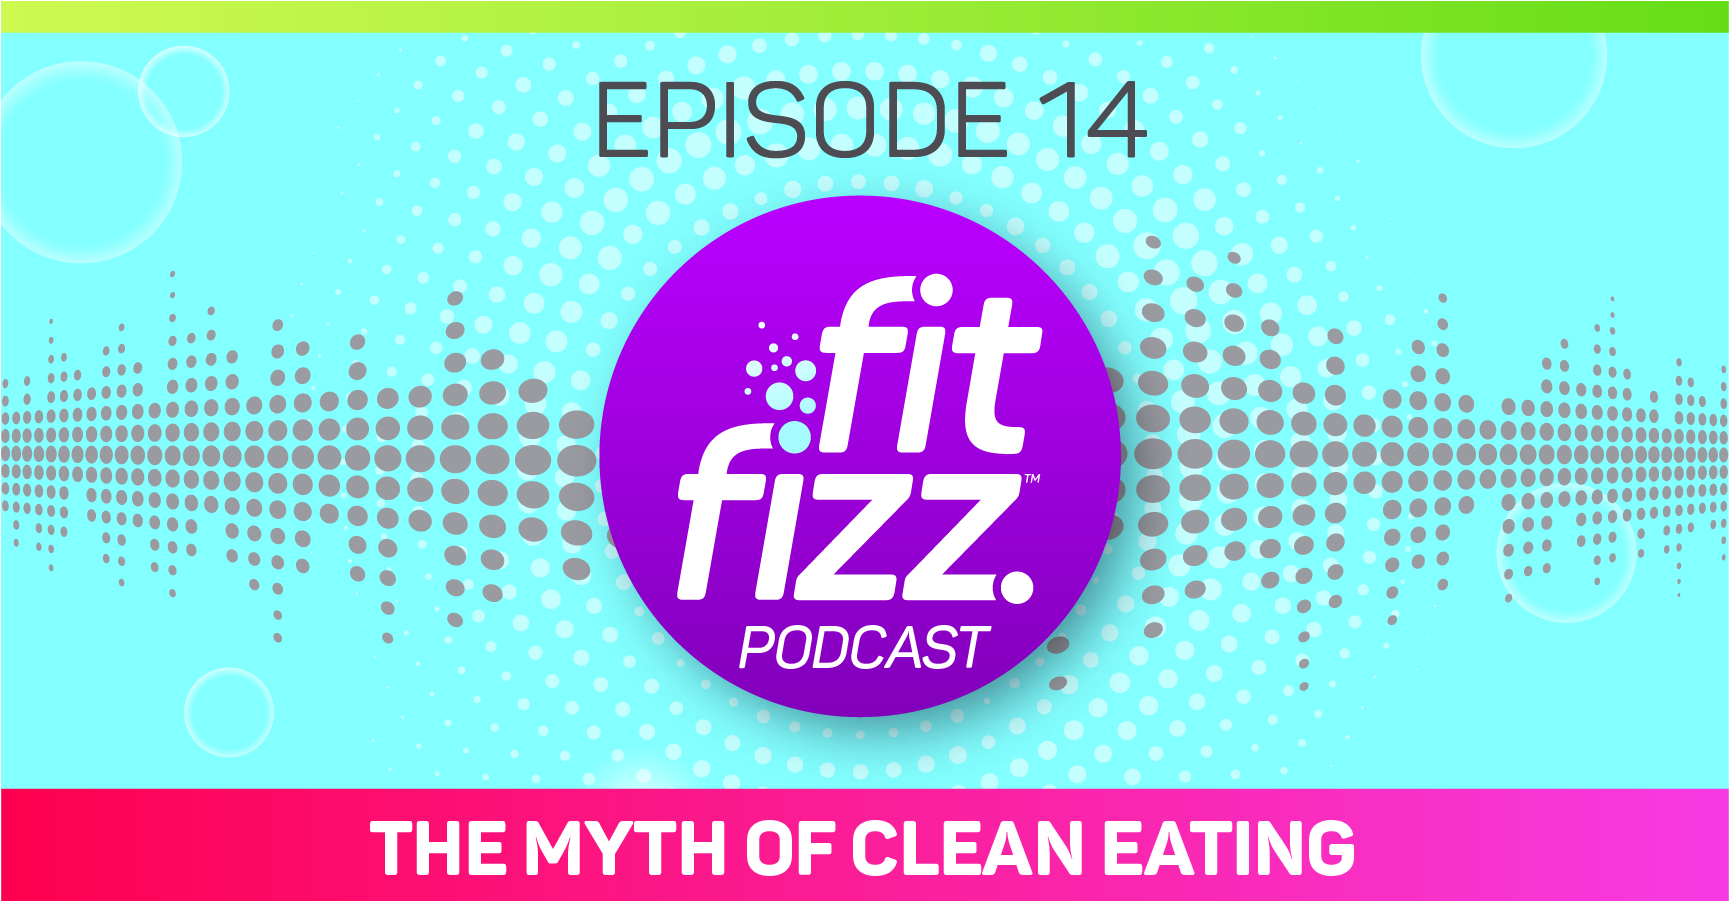 Podcast Ep. 14: The Myth of Clean Eating